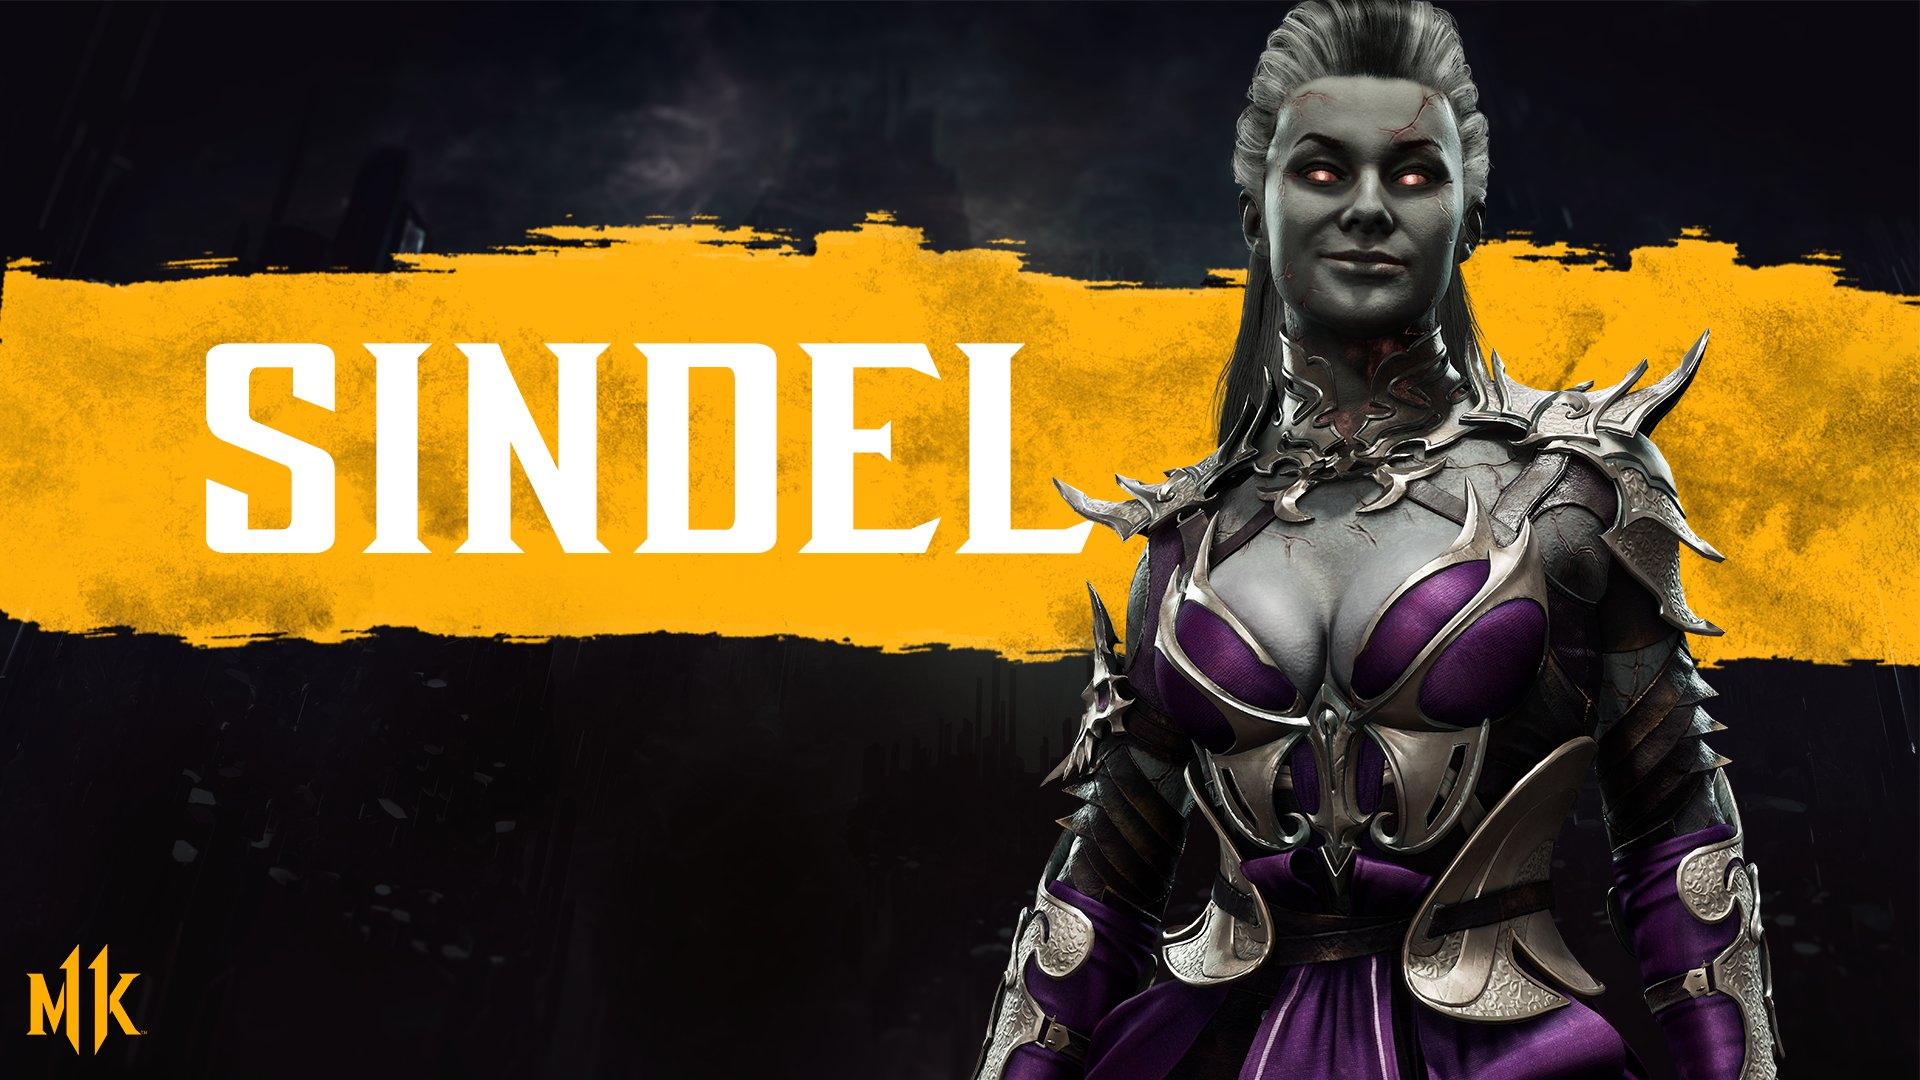 Mortal Kombat 11 background - Sindel